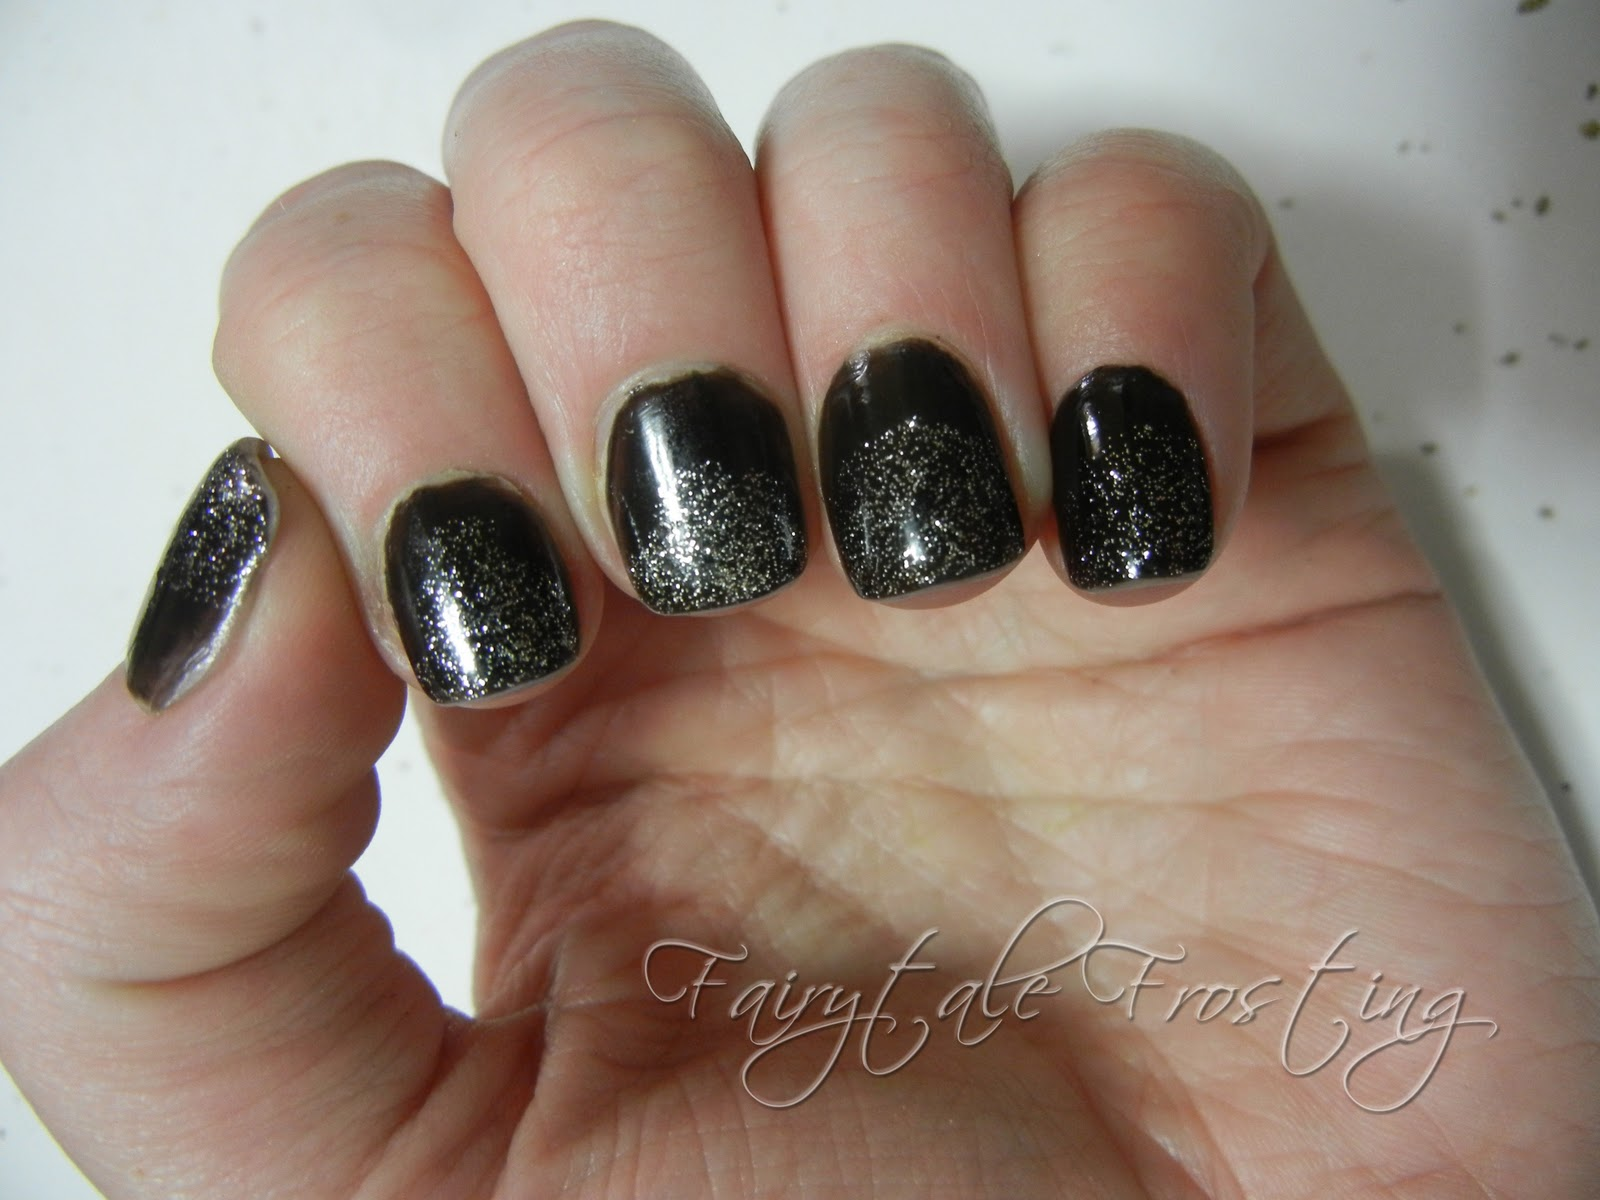 Fairytale frosting black and glitter nails black and glitter nails prinsesfo Choice Image